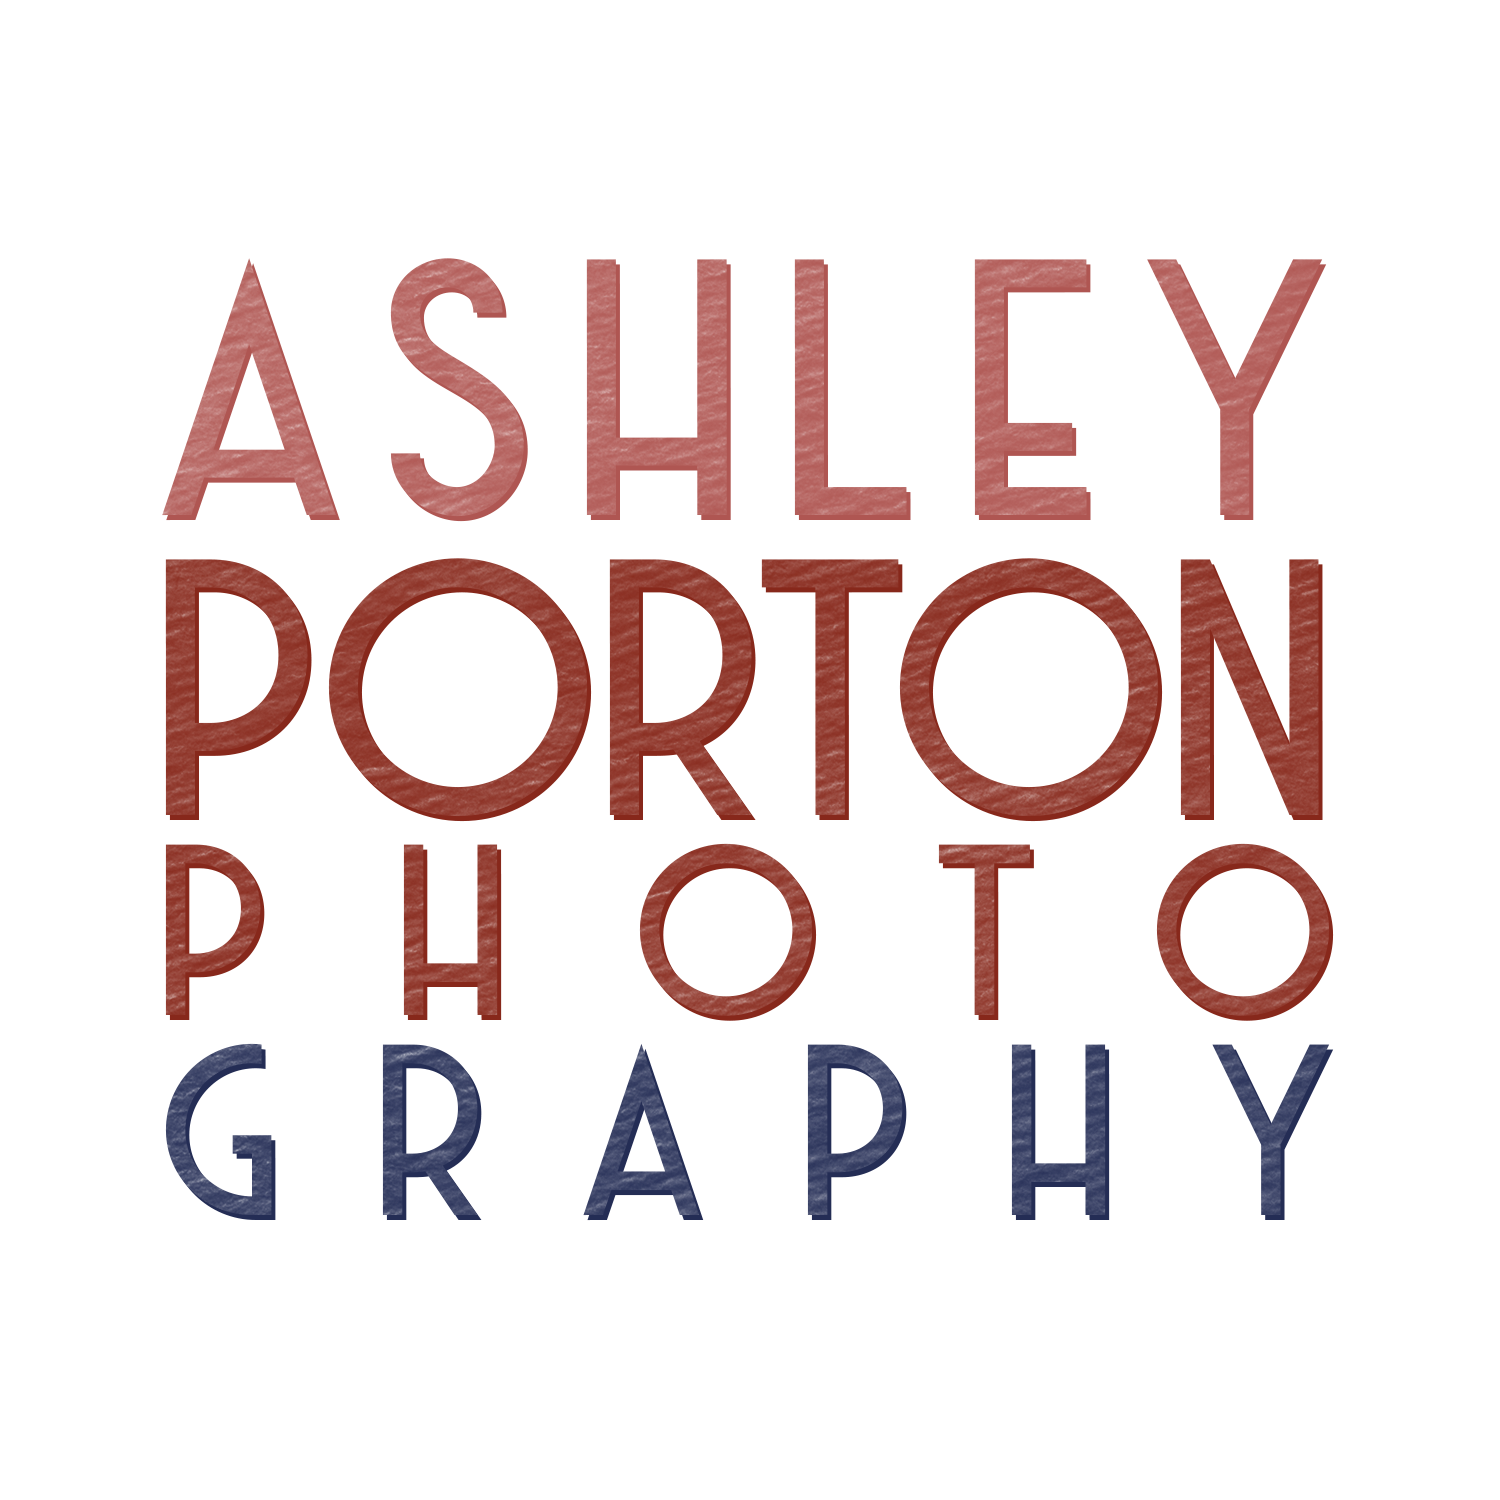 Ashley Porton Photography | Weddings For Humans In Love